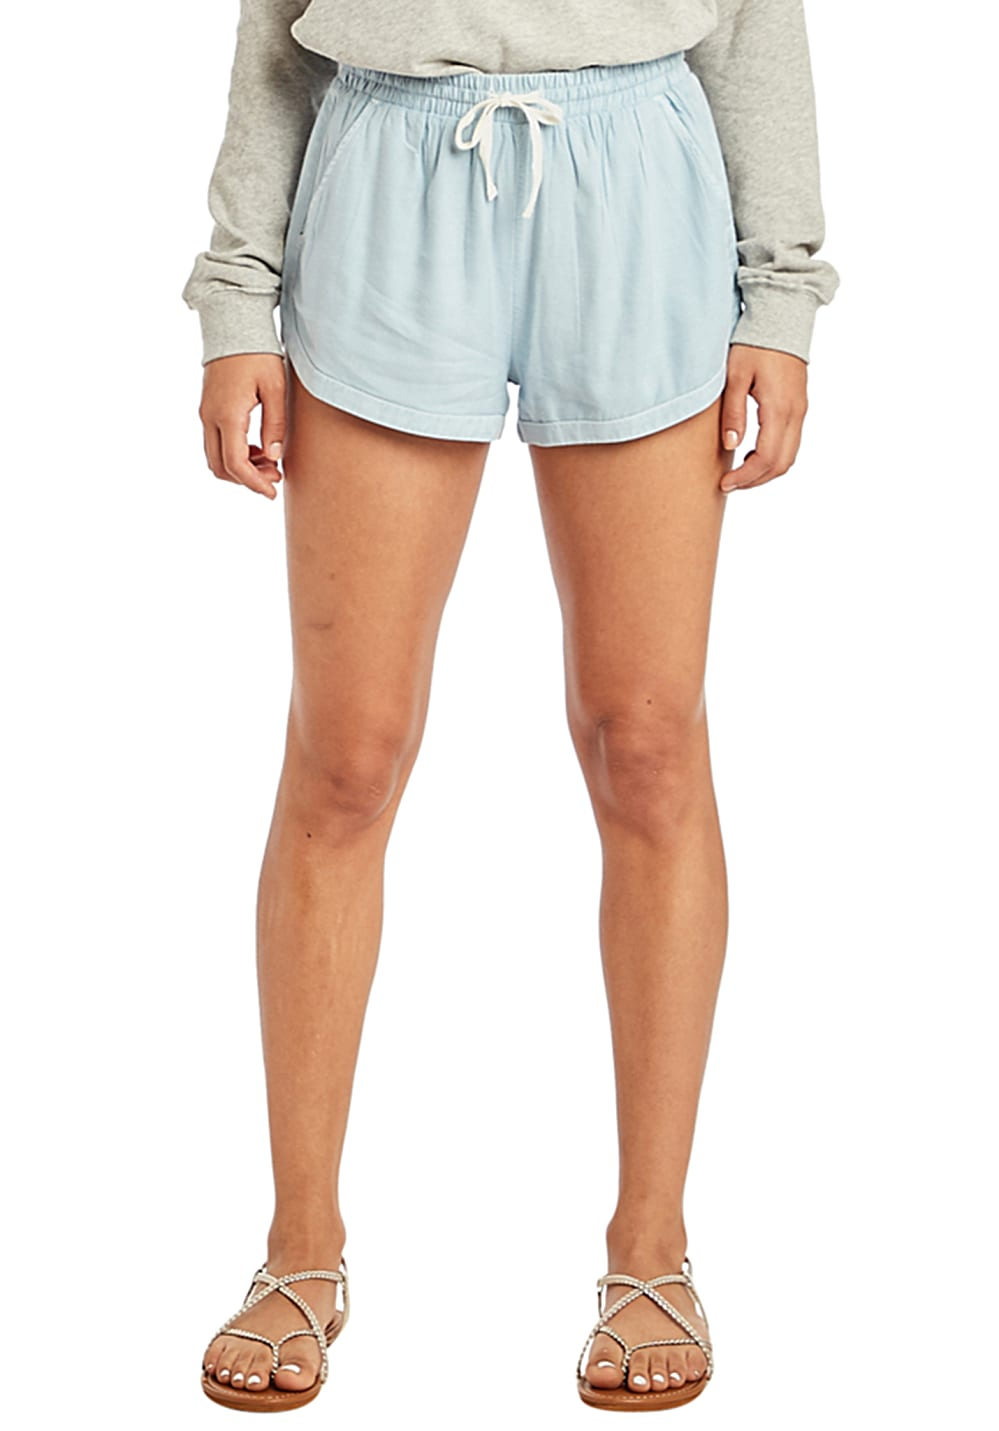 Hosen für Frauen - BILLABONG Road Triangleppin Shorts für Damen Blau  - Onlineshop Planet Sports